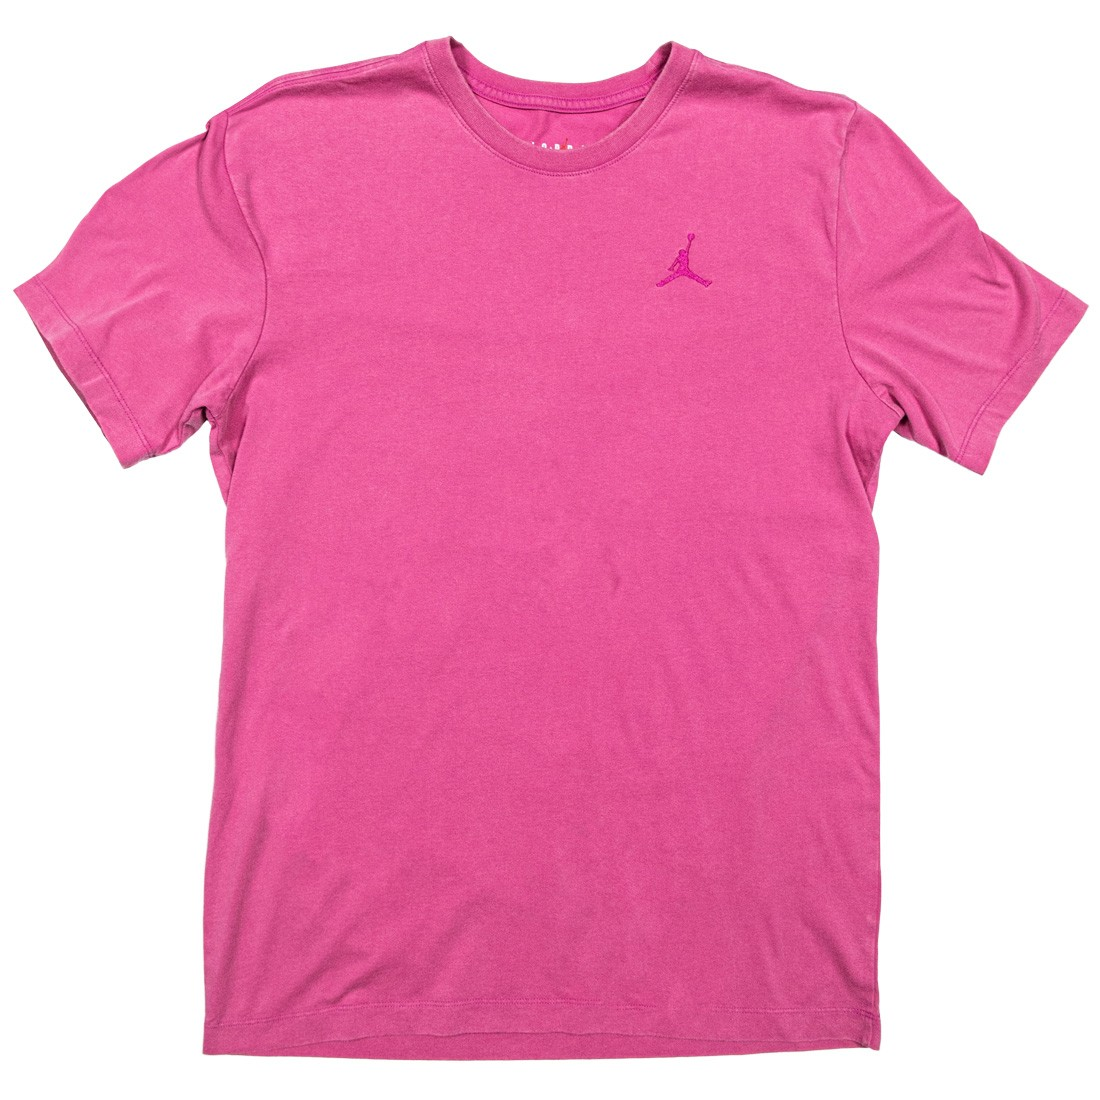 Jordan Men Tee (active fuchsia / active fuchsia)